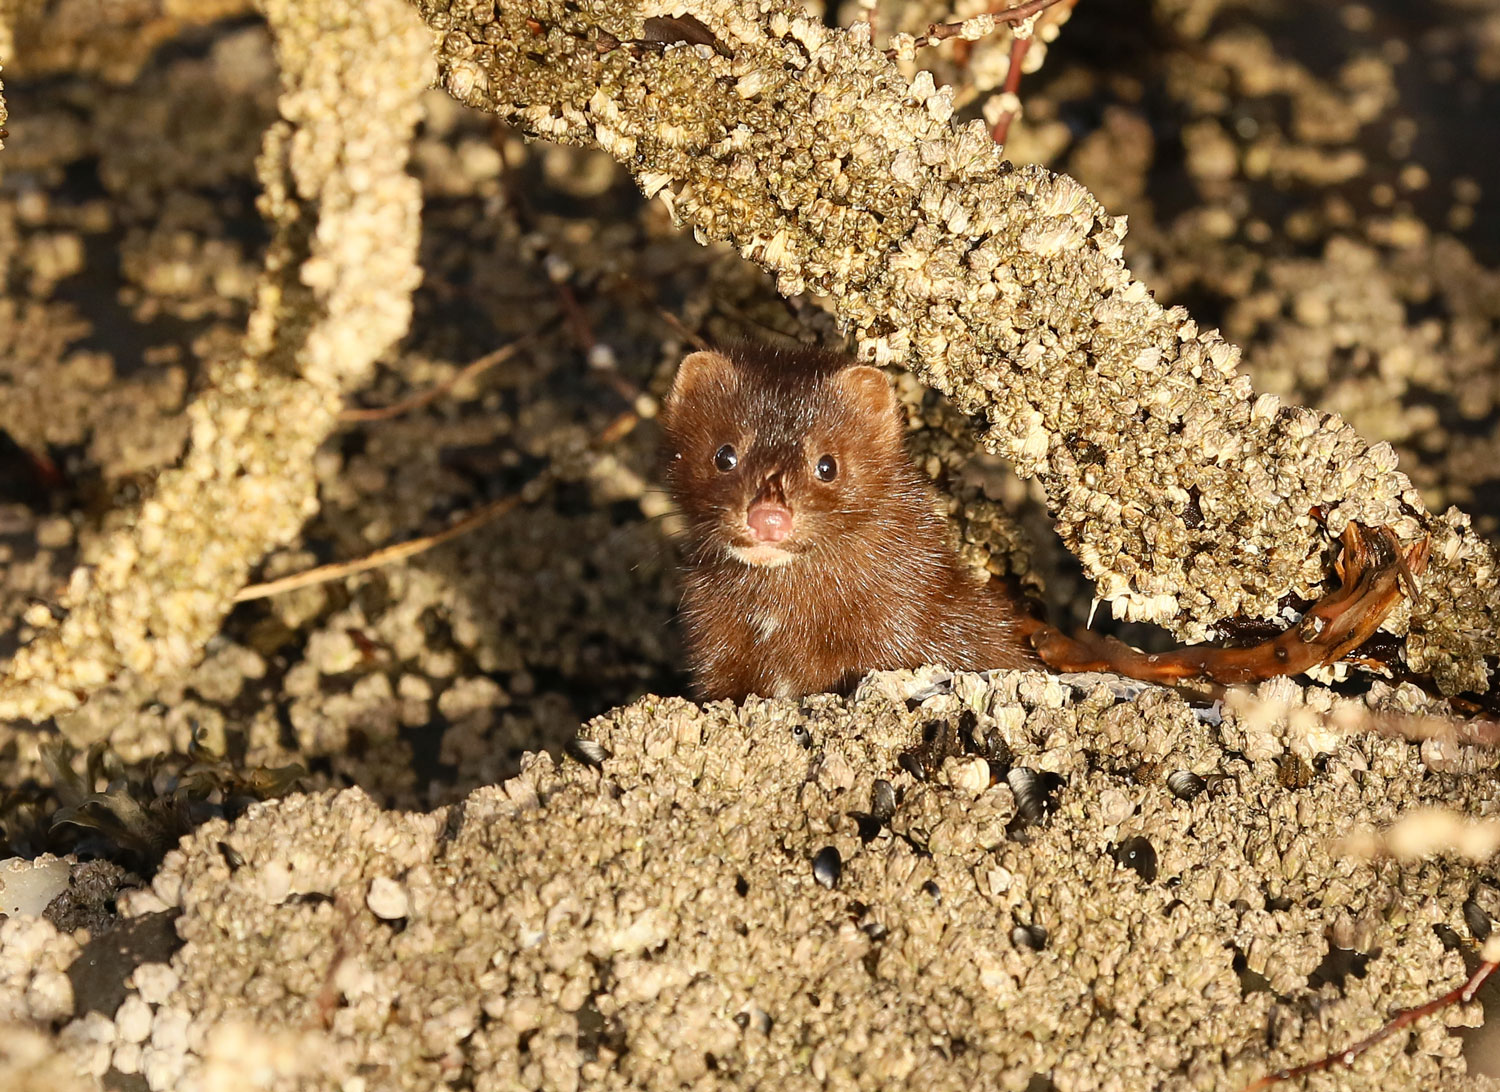 American mink ( Neovison vison)   peeking out between barnacles and seaweed. Don't let that little face fool you. This mink will shred your hand if you try to pet it.